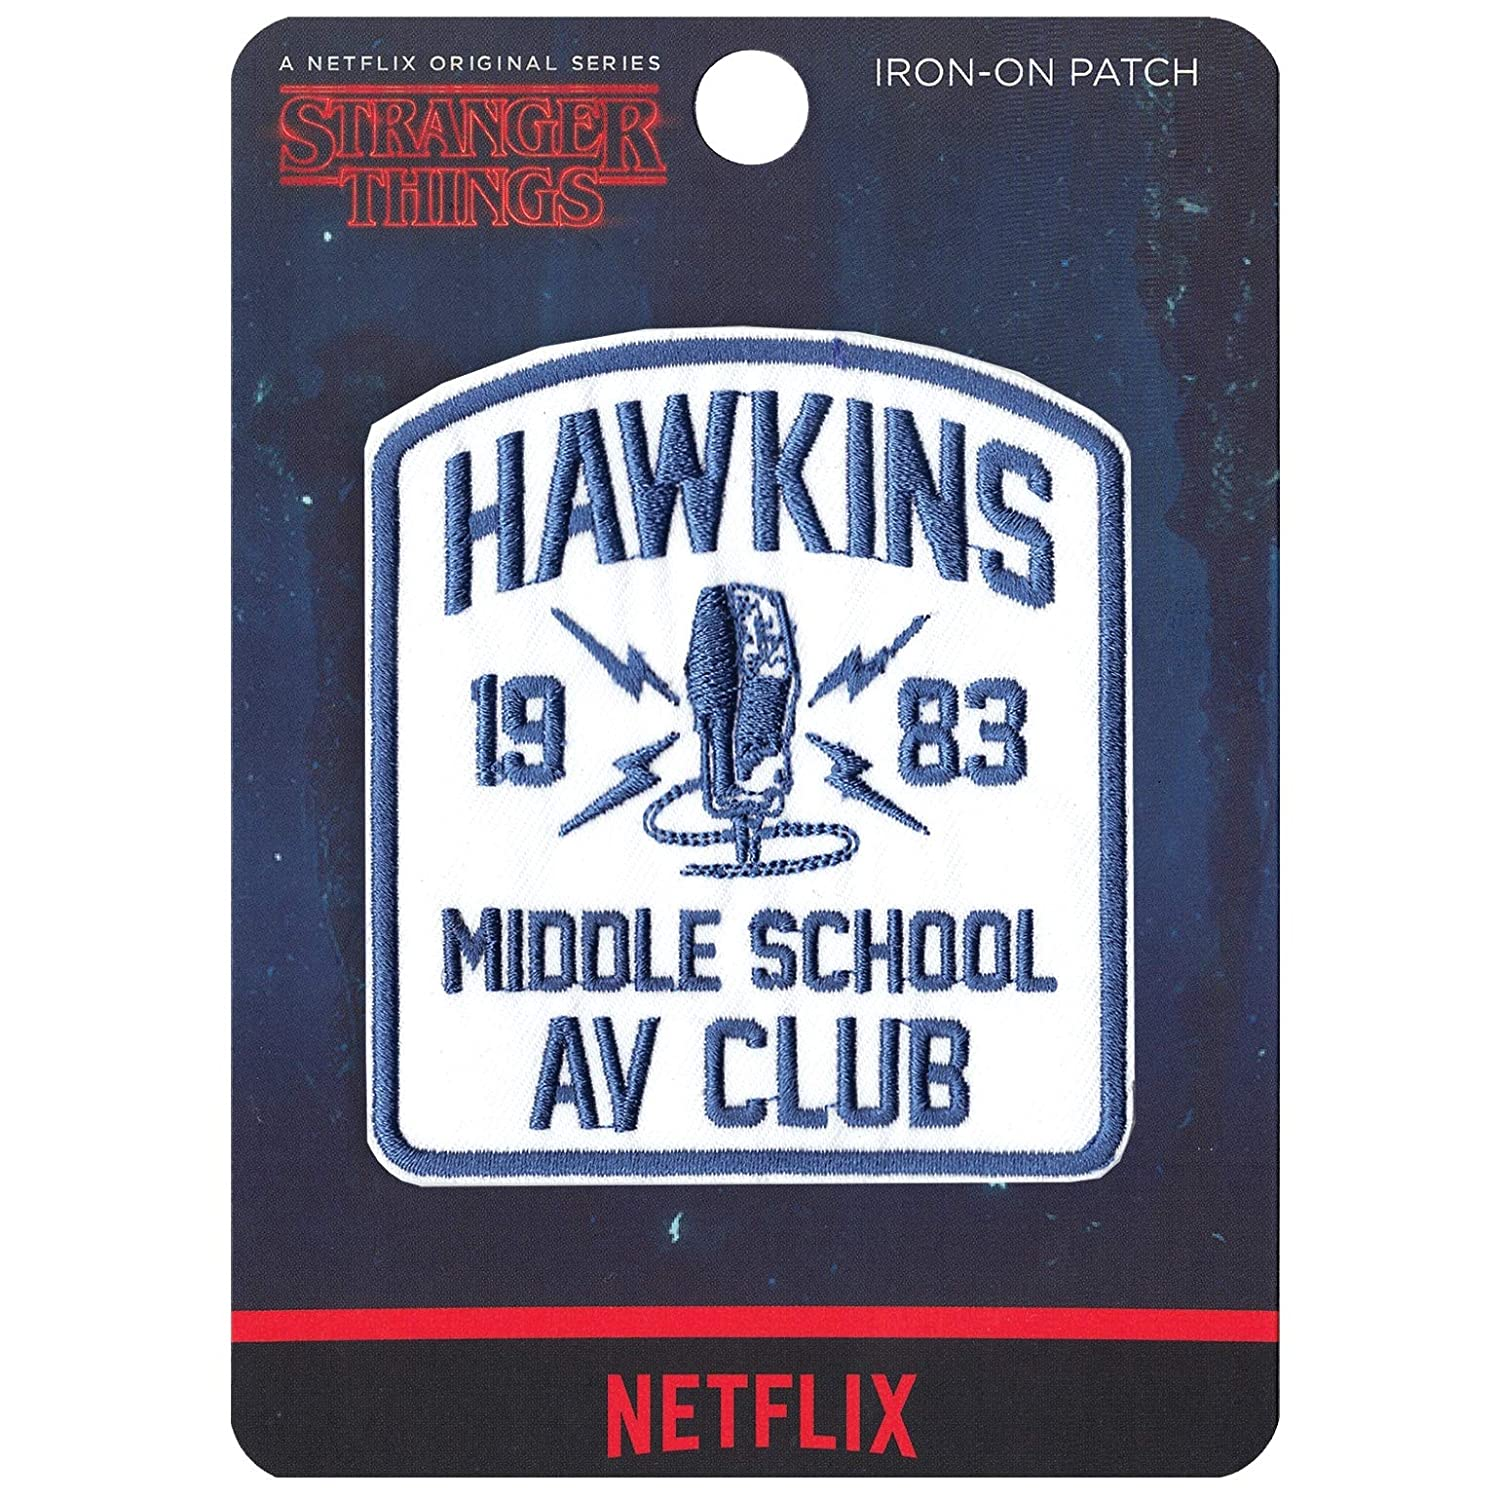 Amazon.com: Stranger Things Hawkins escuela media AV Club ...